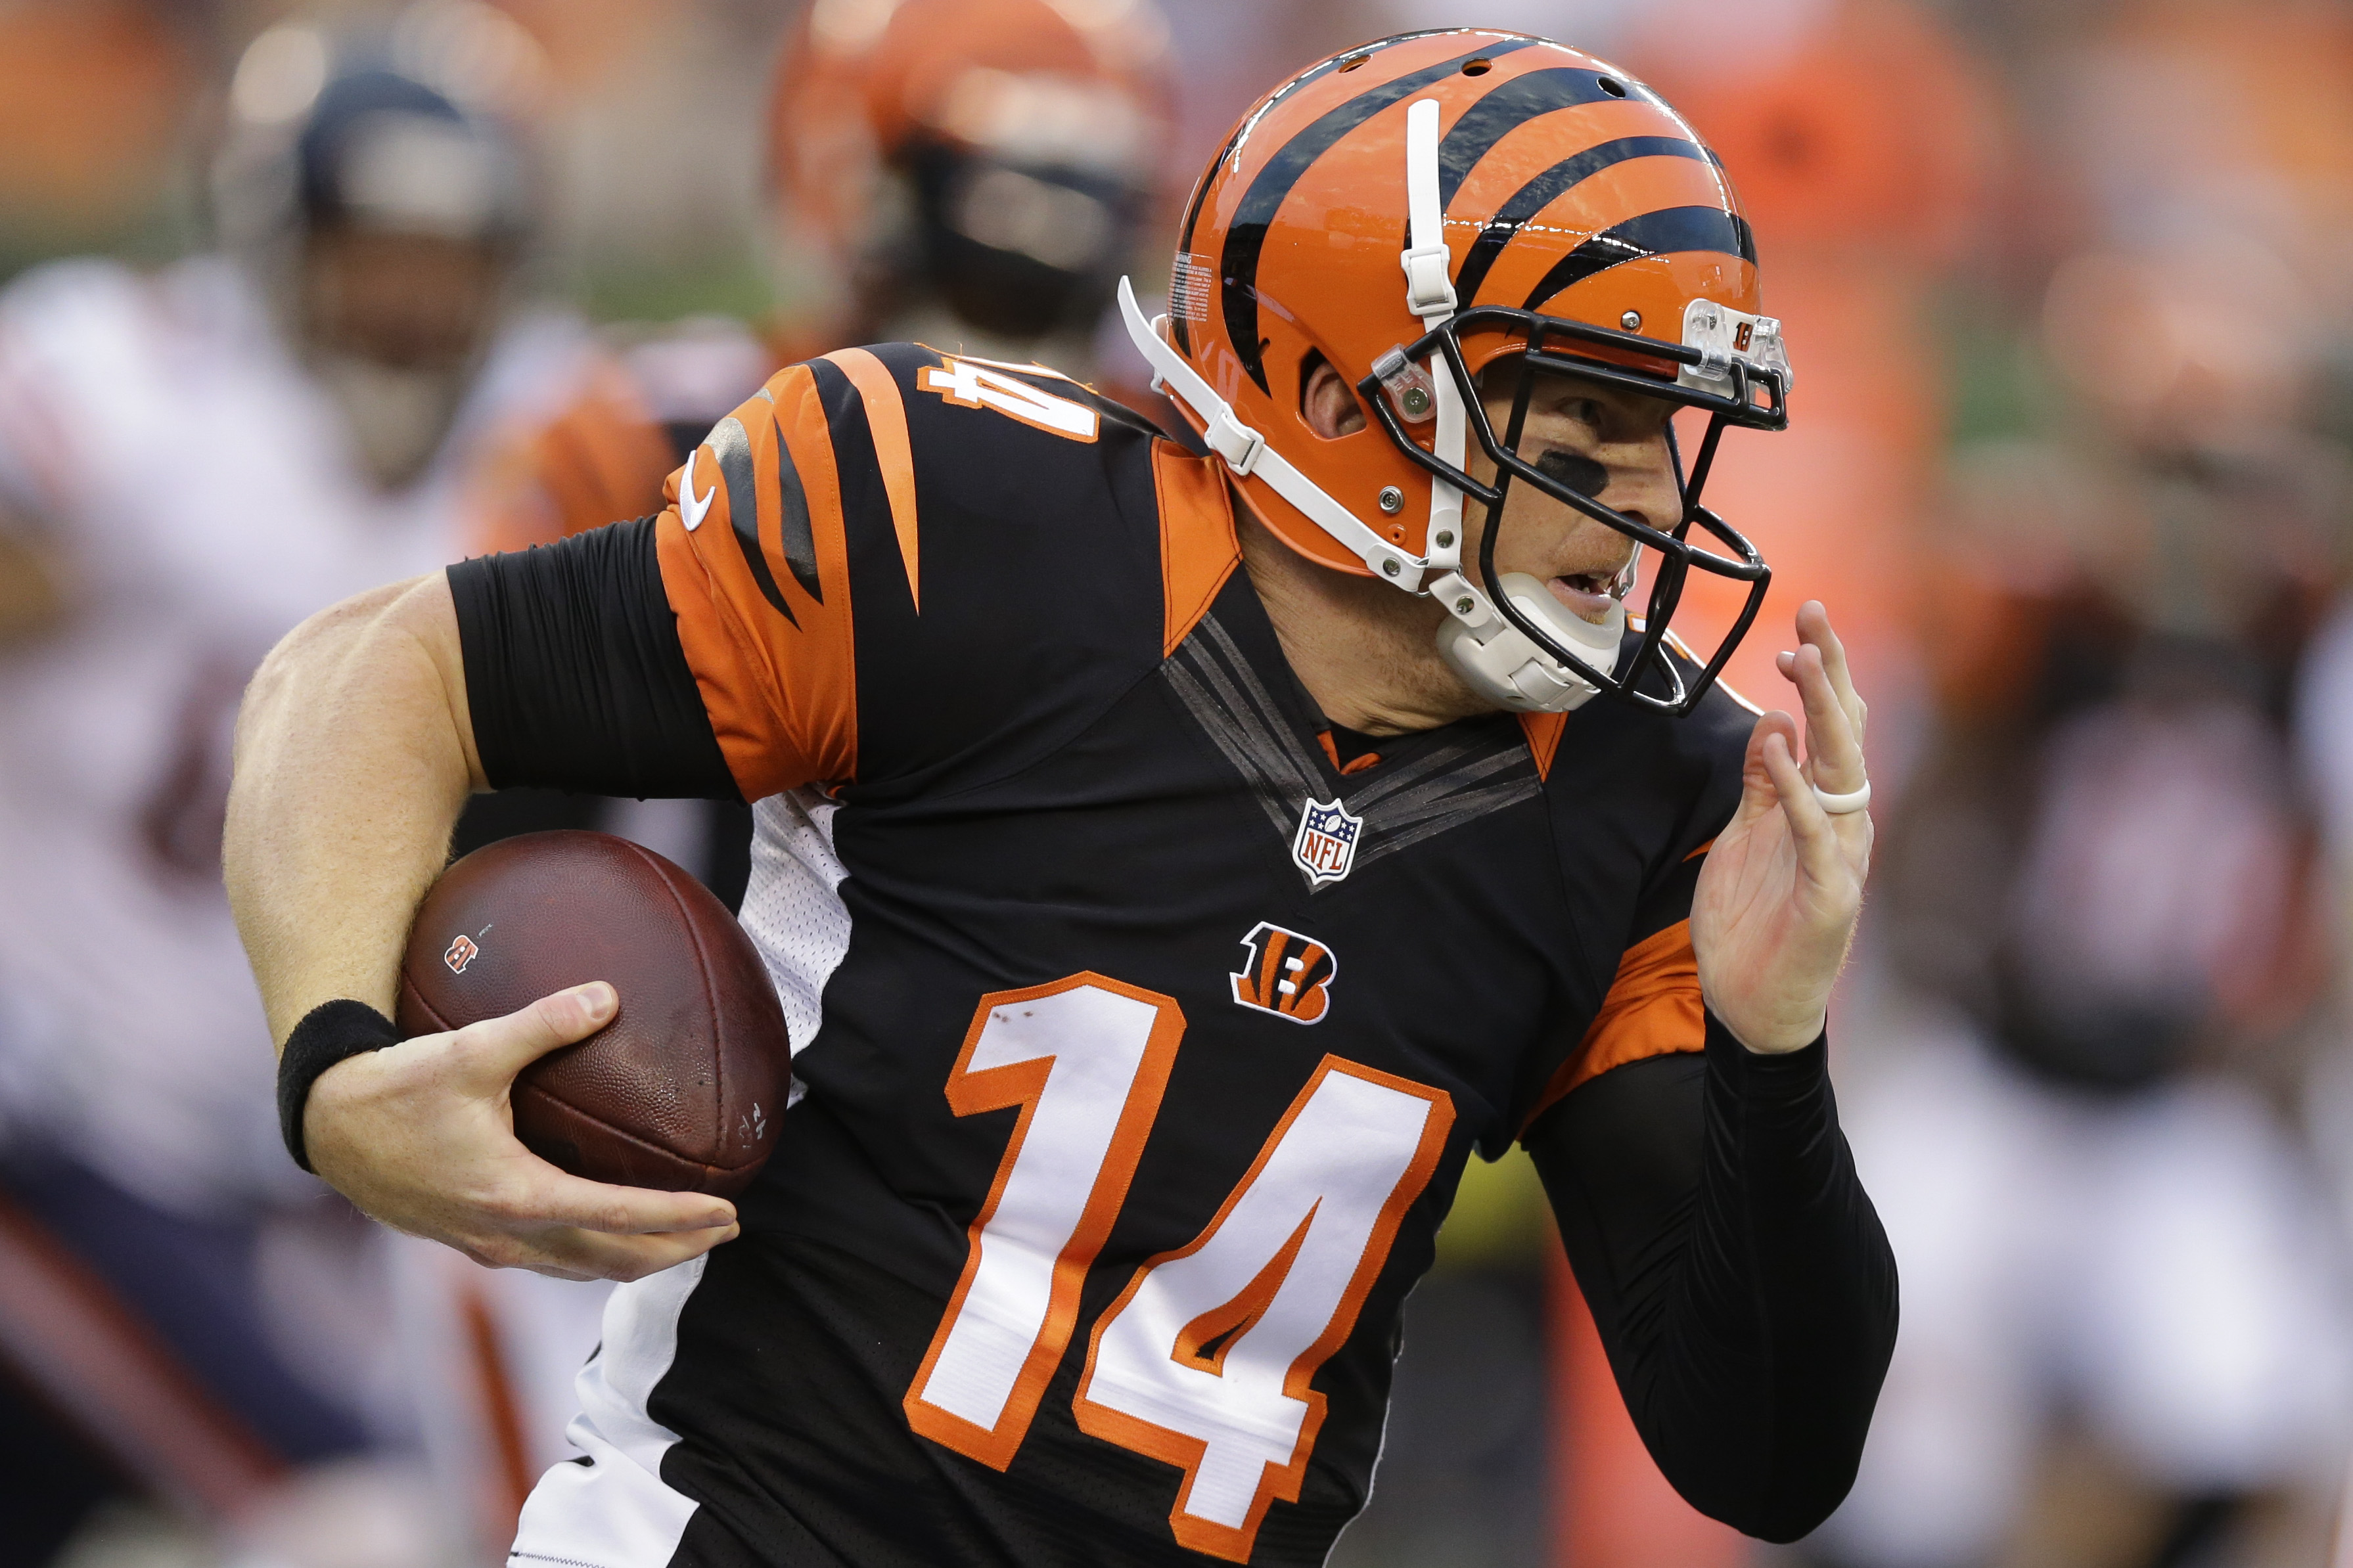 Cincinnati Bengals quarterback Andy Dalton runs the ball in the first half of an NFL preseason football game against the Chicago Bears, Saturday, Aug. 29, 2015, in Cincinnati. (AP Photo/072012001006)